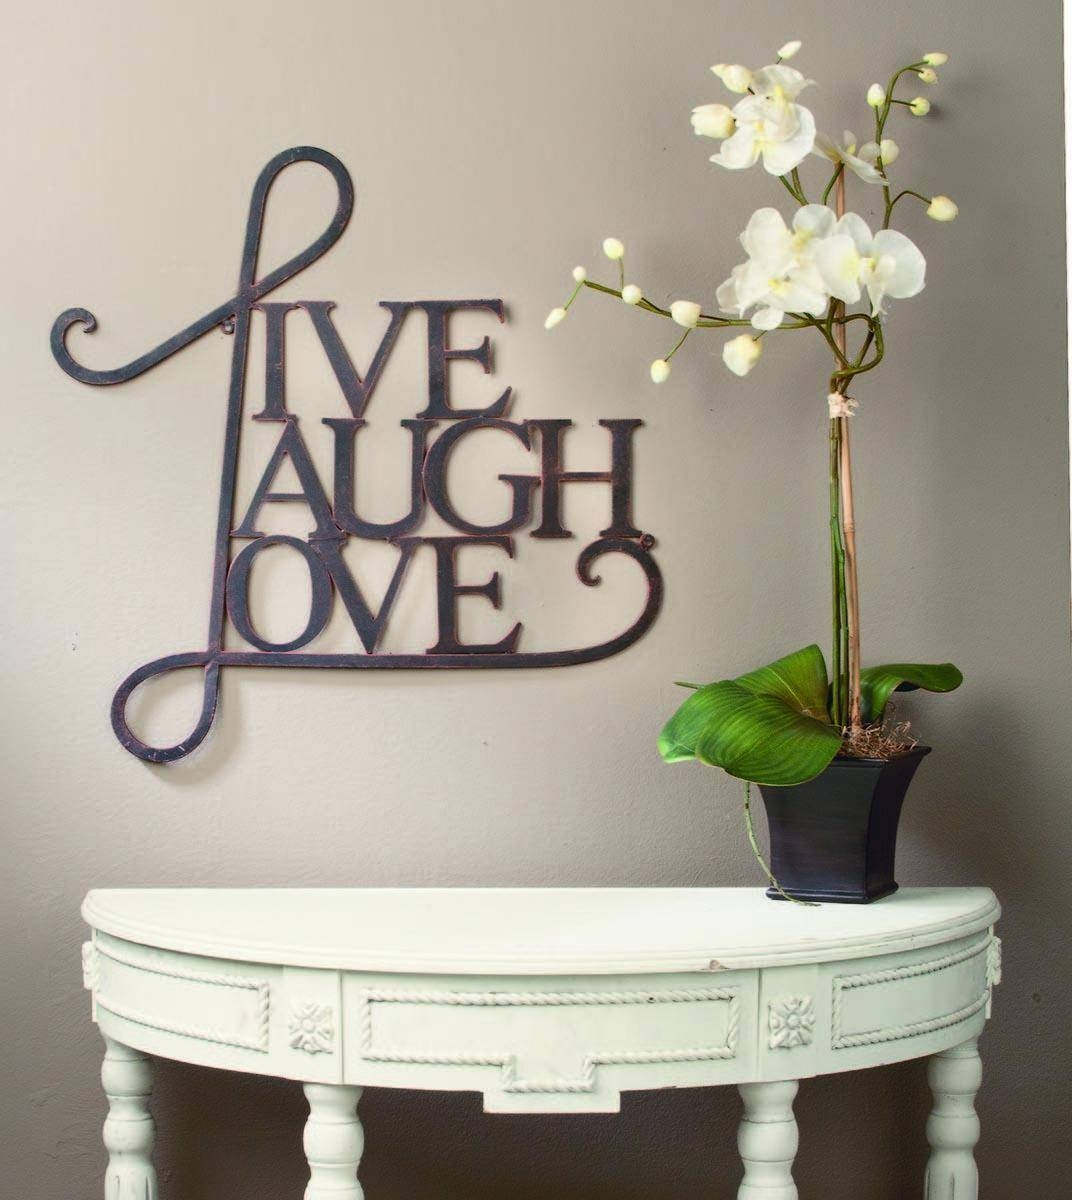 8 Best Images Of Love Wall Decor – Heart Shaped Frames, Live Laugh Intended For 2017 Live Love Laugh Metal Wall Art (Gallery 12 of 25)